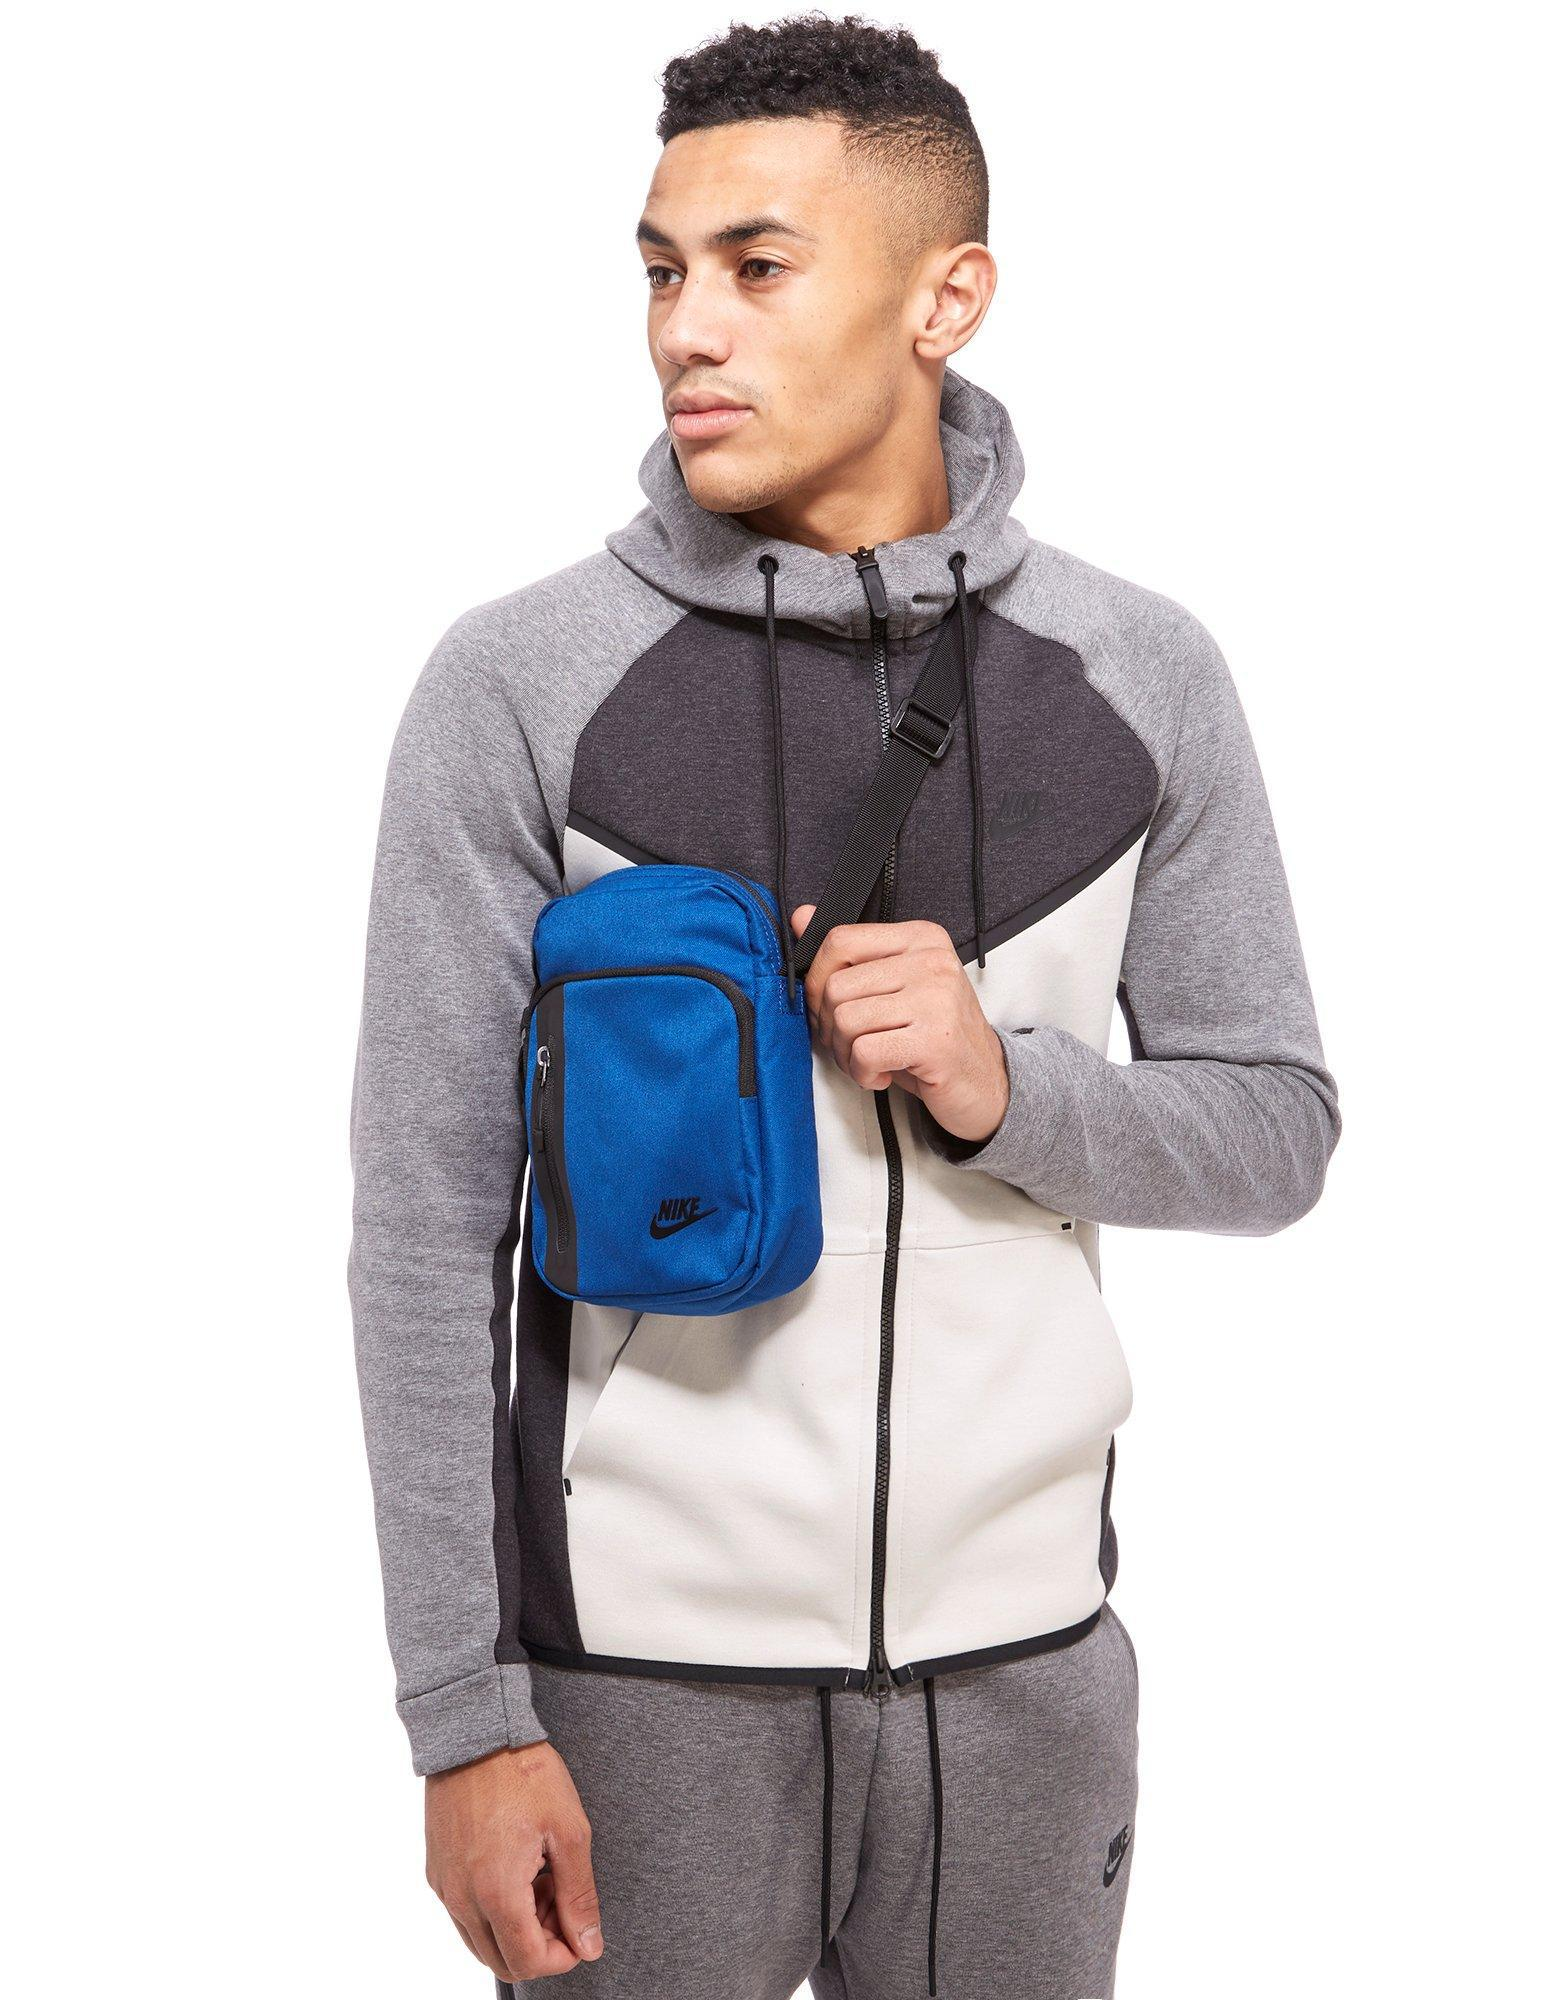 Lyst - Nike Core Small Items 3.0 Pouch Bag in Blue for Men 44888348ae